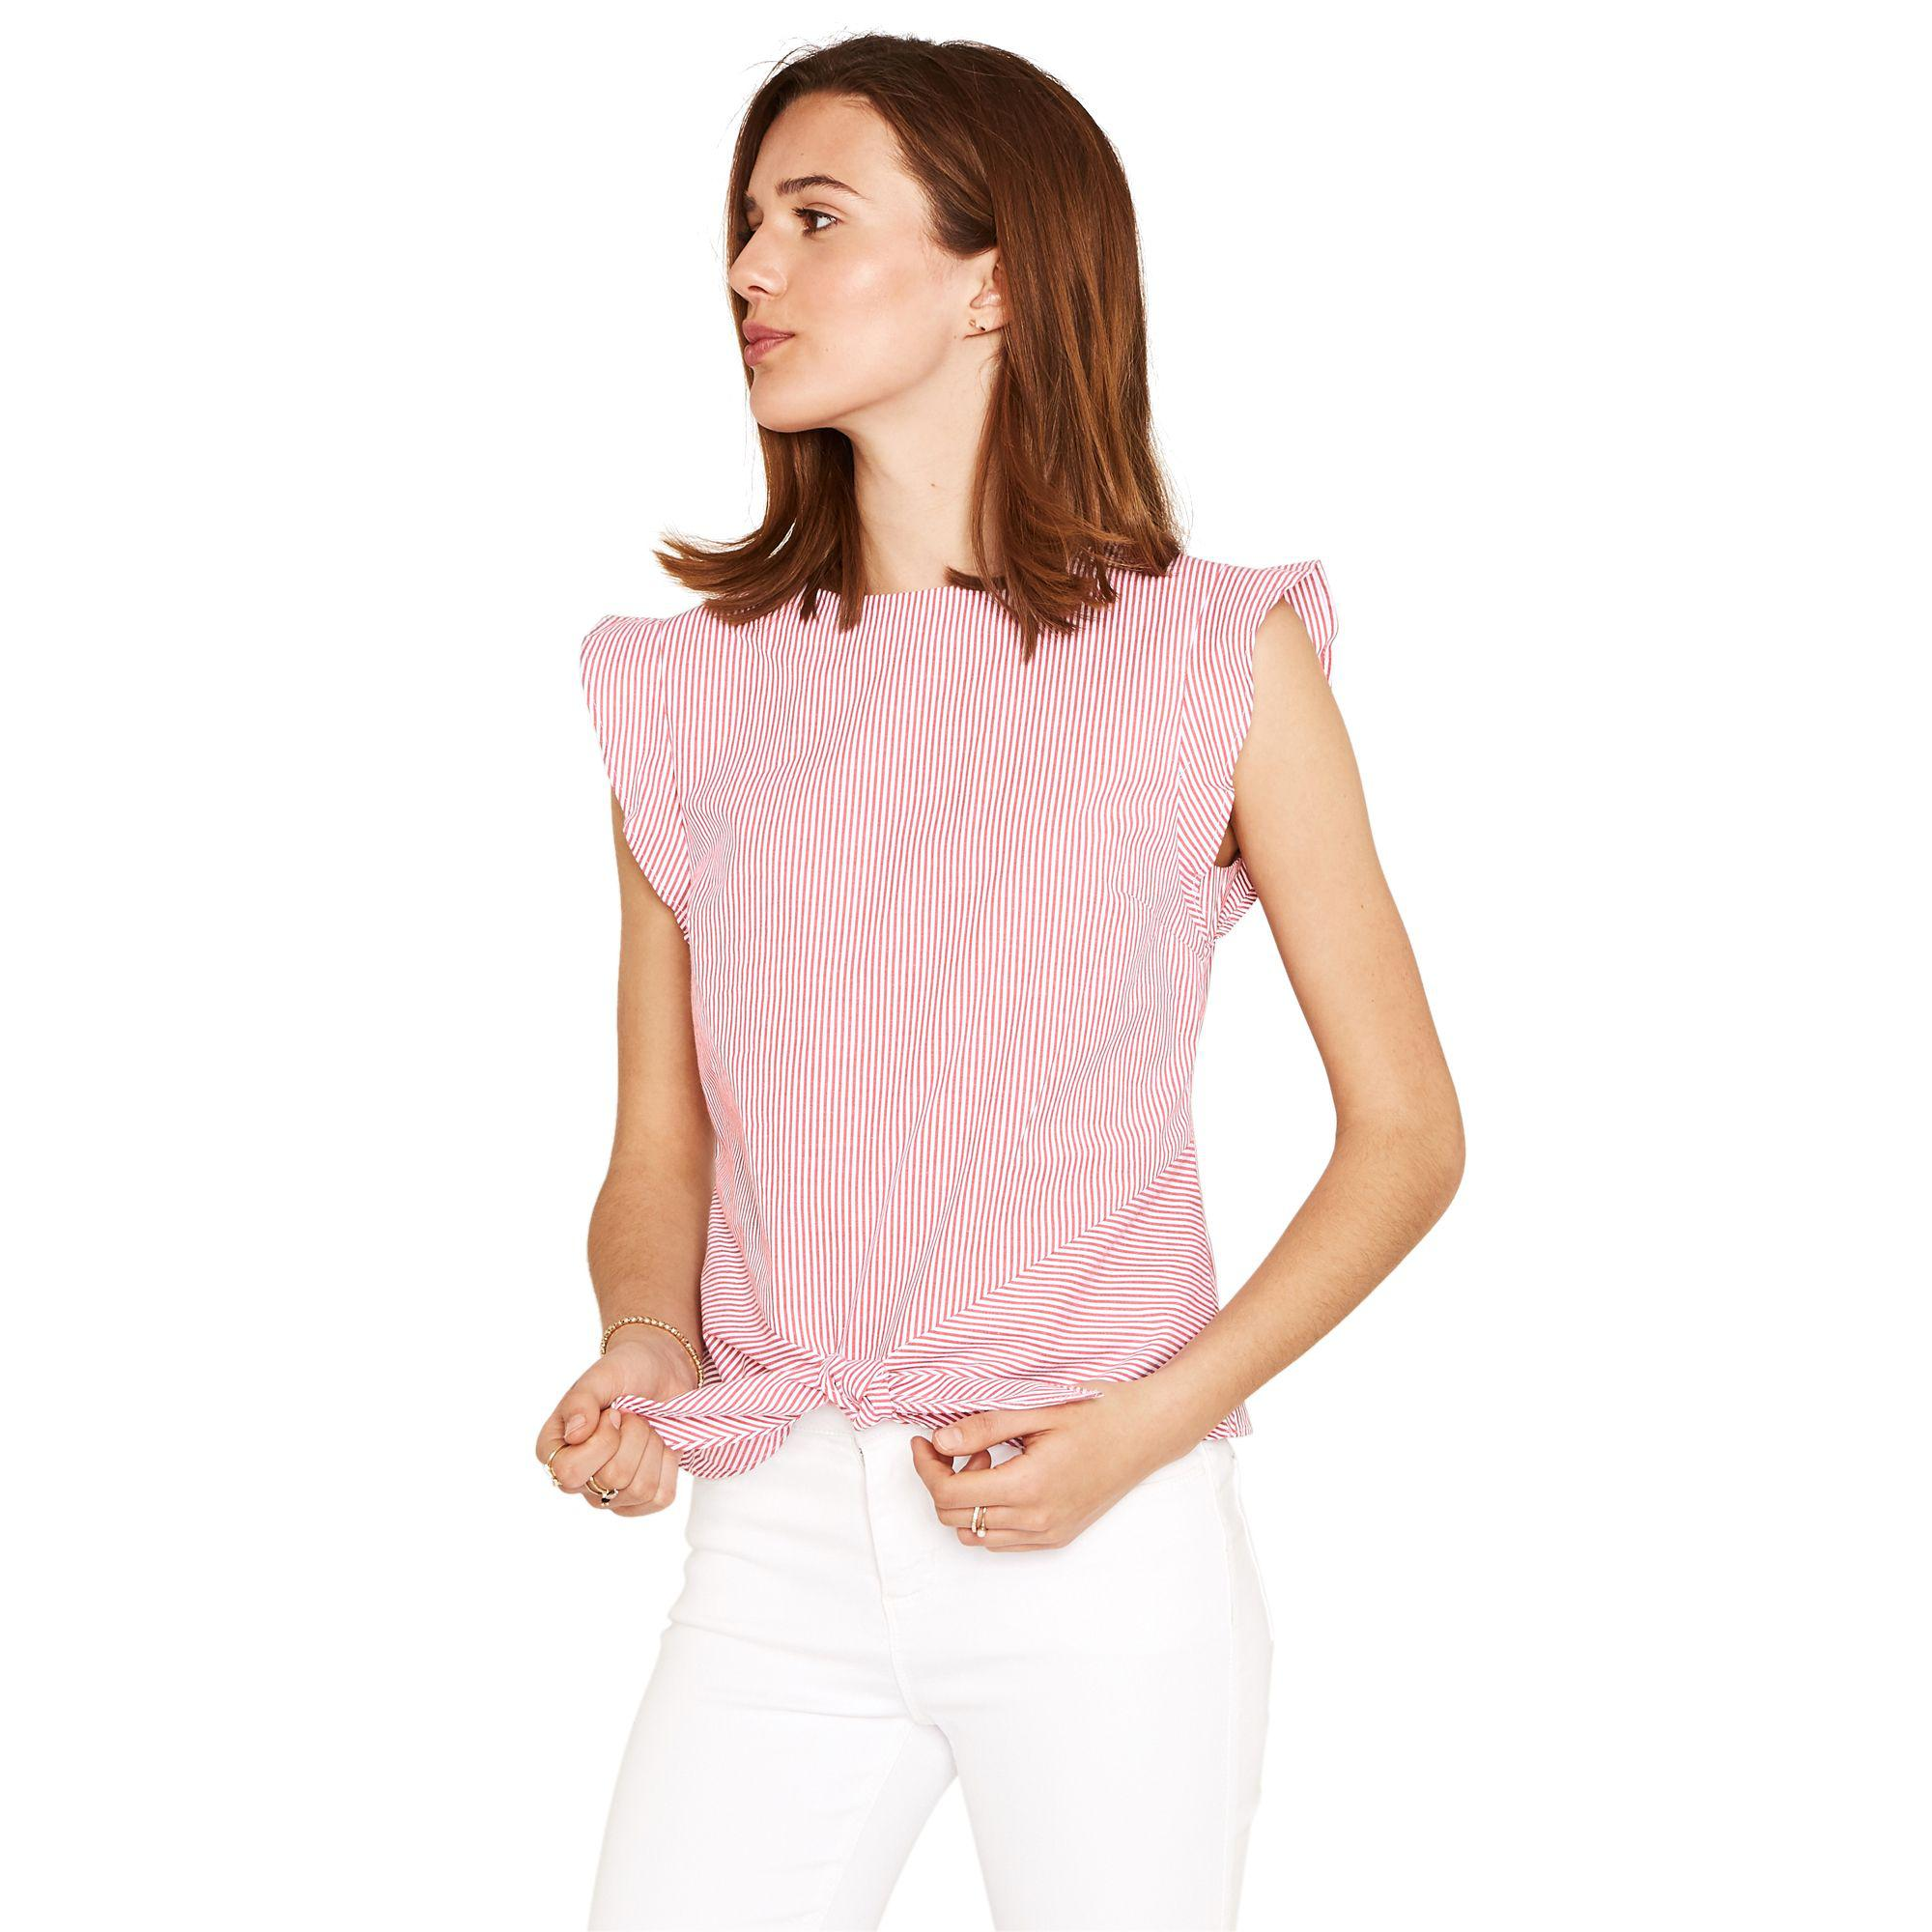 ab879a8f1b30 Oasis Ticking Stripe Tie Front Tee Shirt in Pink - Lyst